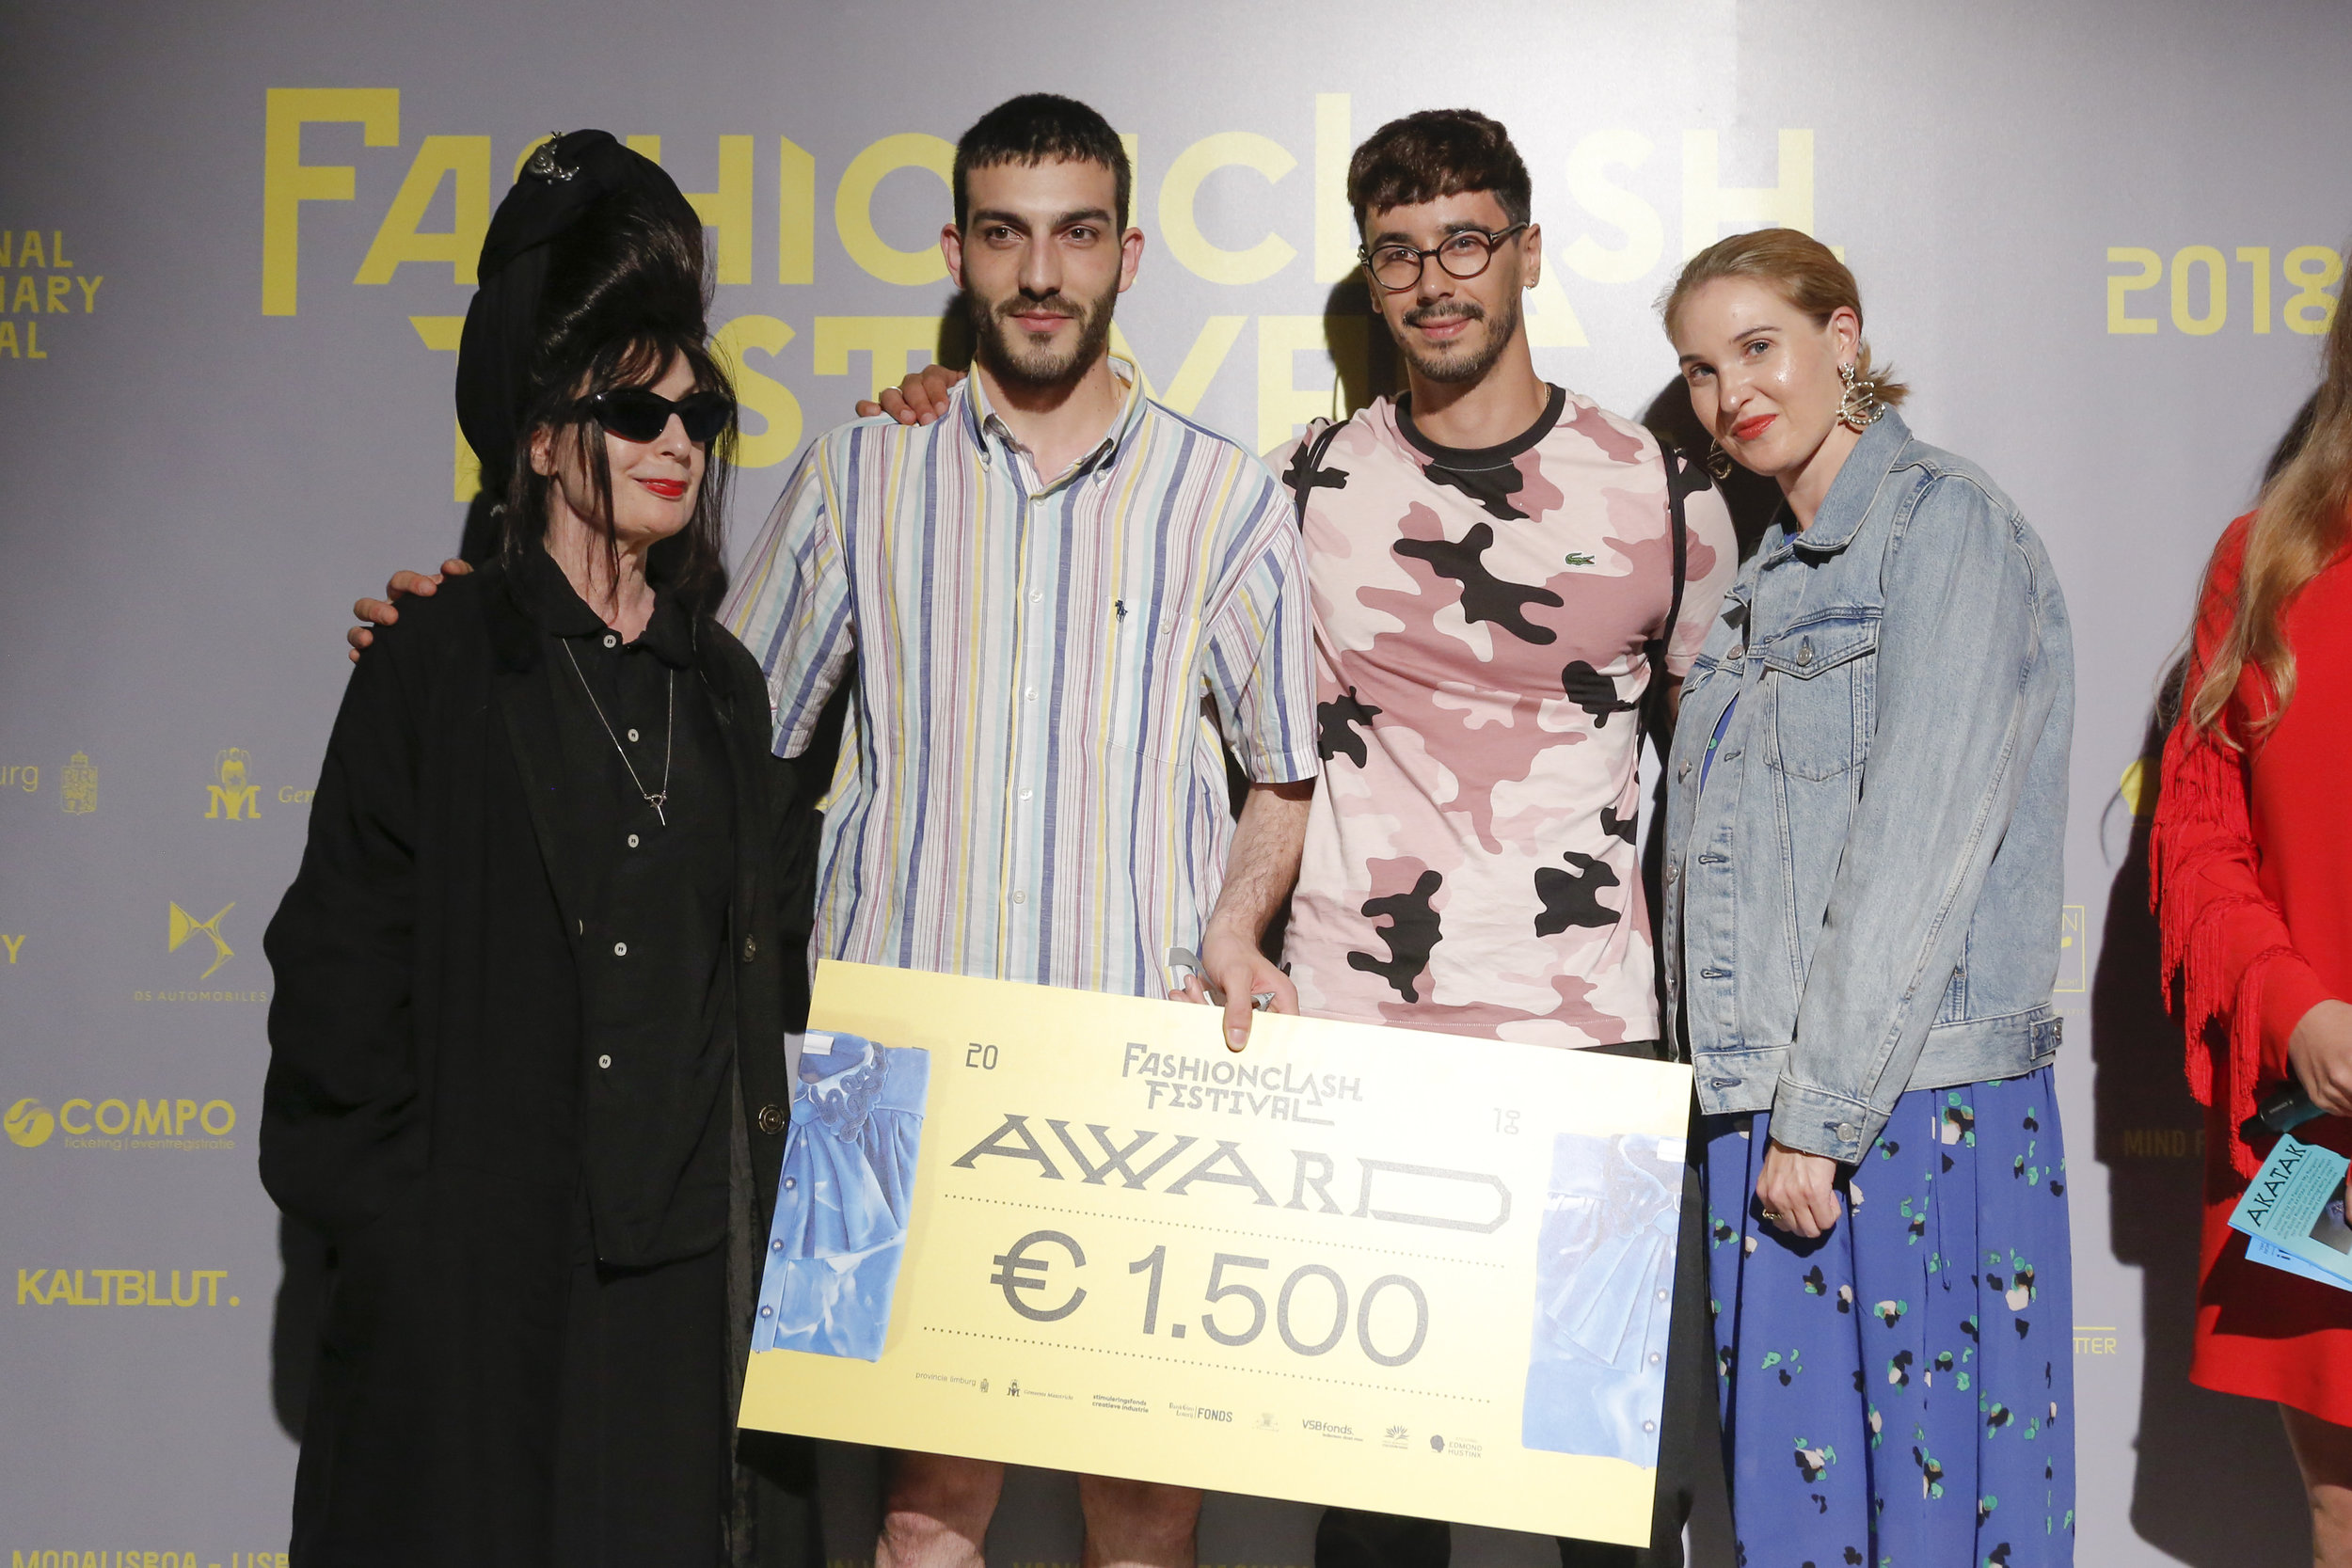 AWARDS_Filipe-Augusto-winner-FASHIONCLASH-Festival-Award.jpg